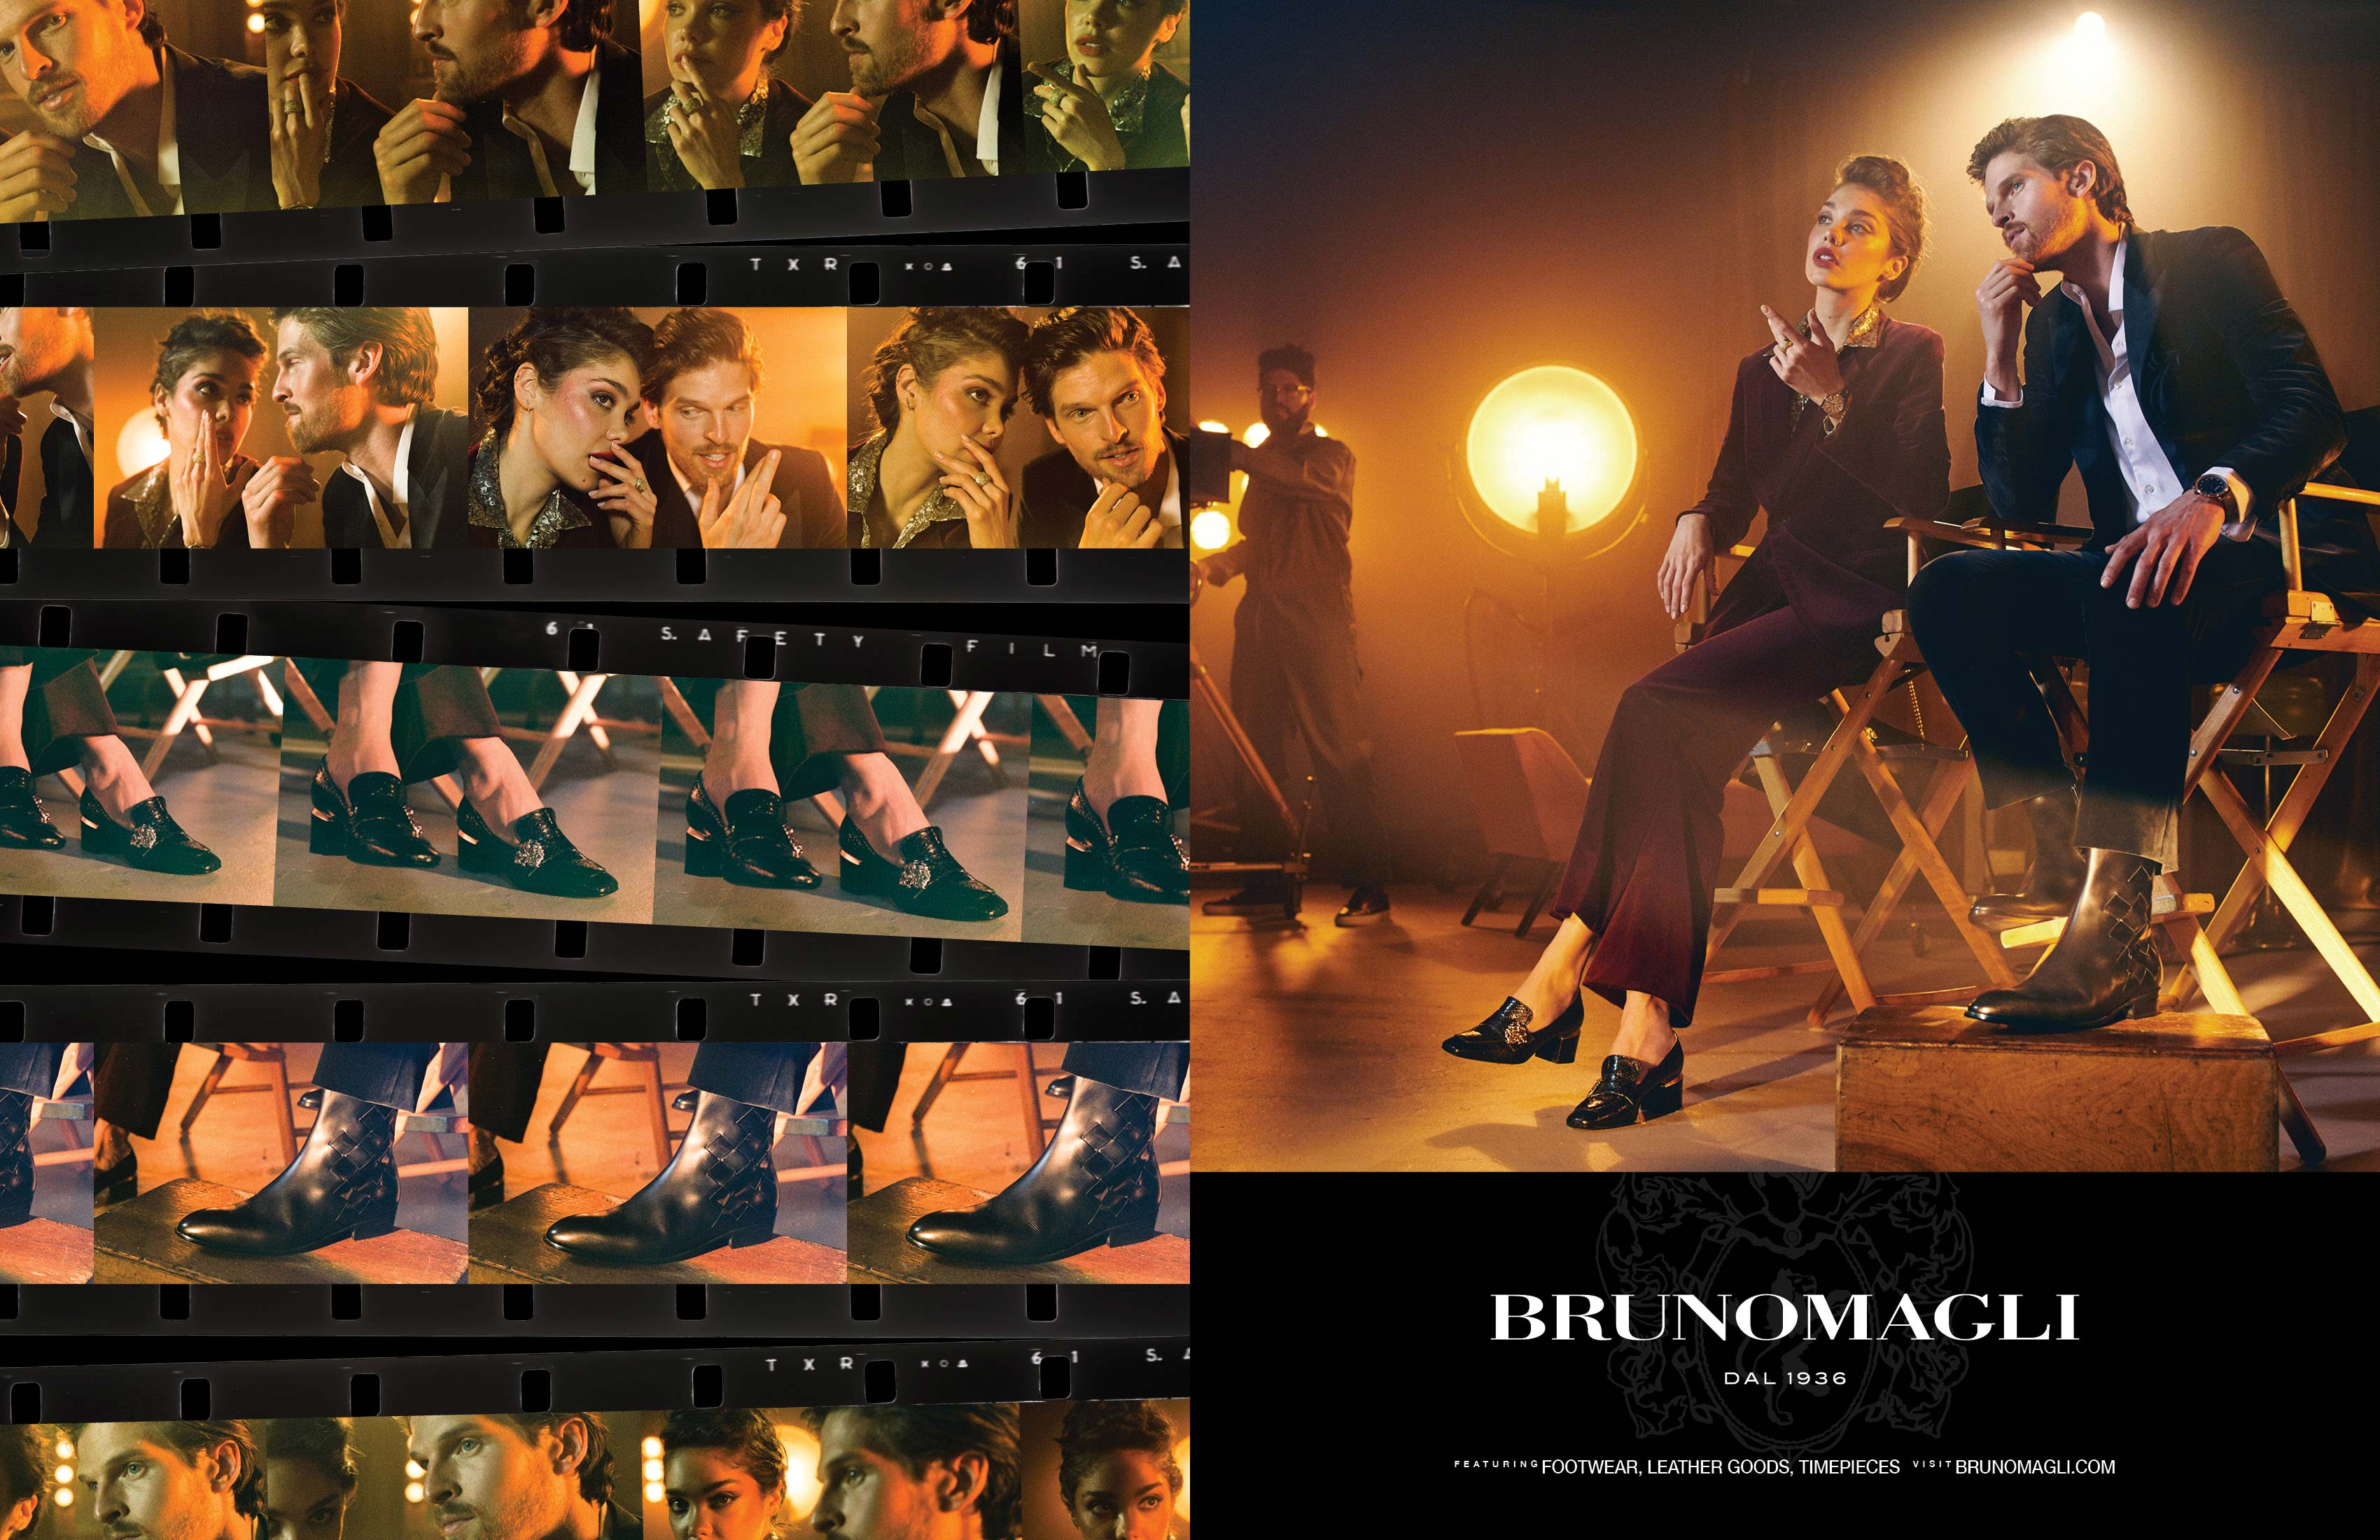 Brunomagli aw19 ad mocks dps